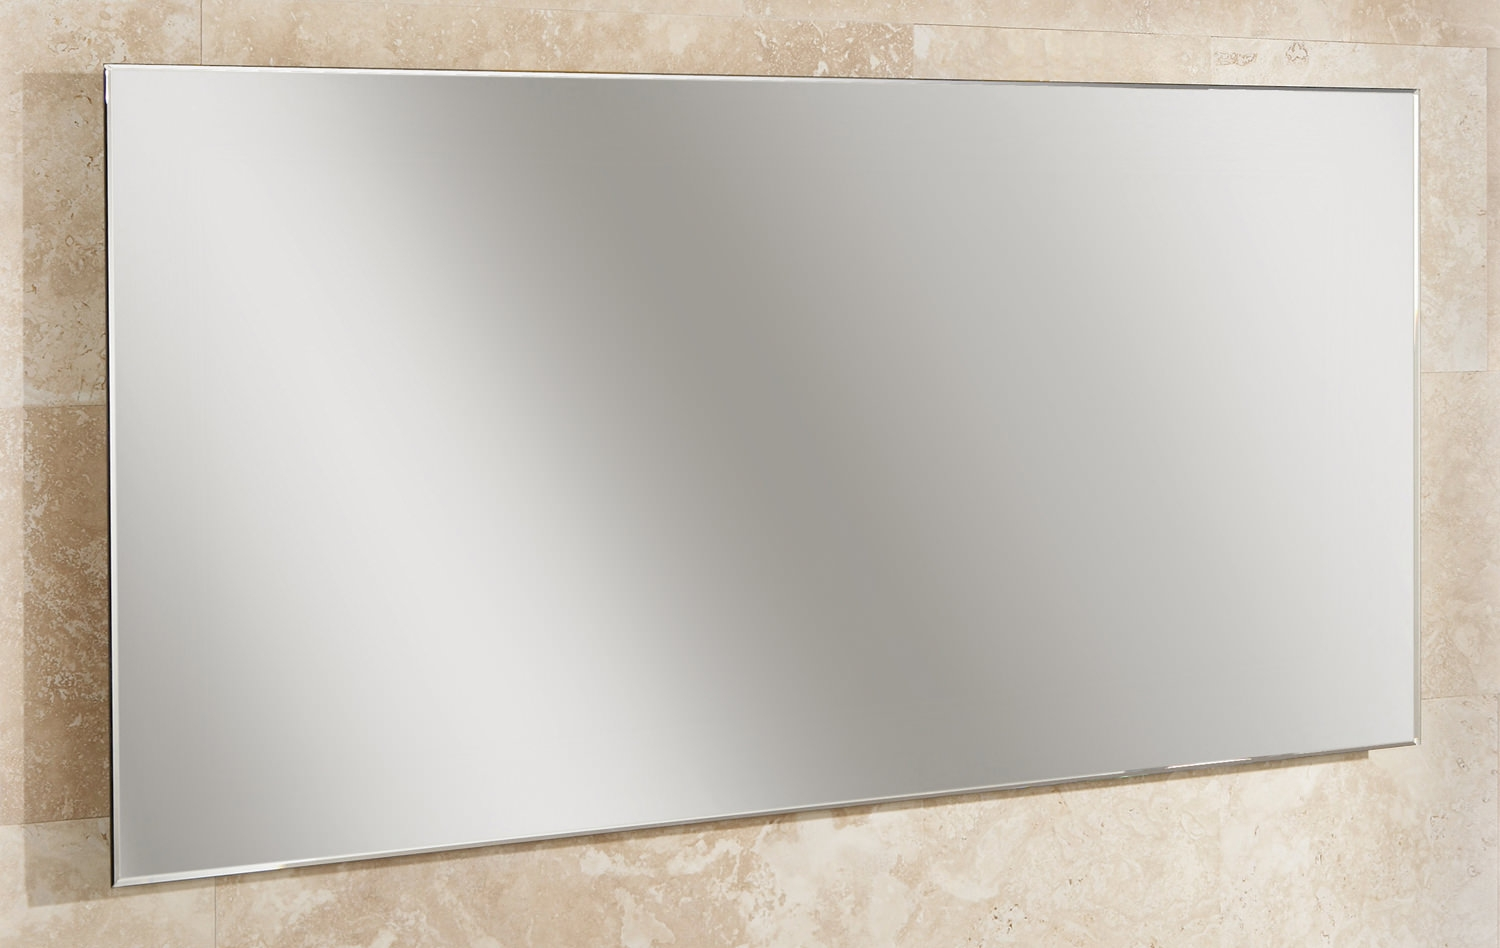 Hib Willow Landscape Bevelled Edge Mirror 1200 X 600mm 77305000 Inside Bevel Edged Mirror (Image 10 of 15)